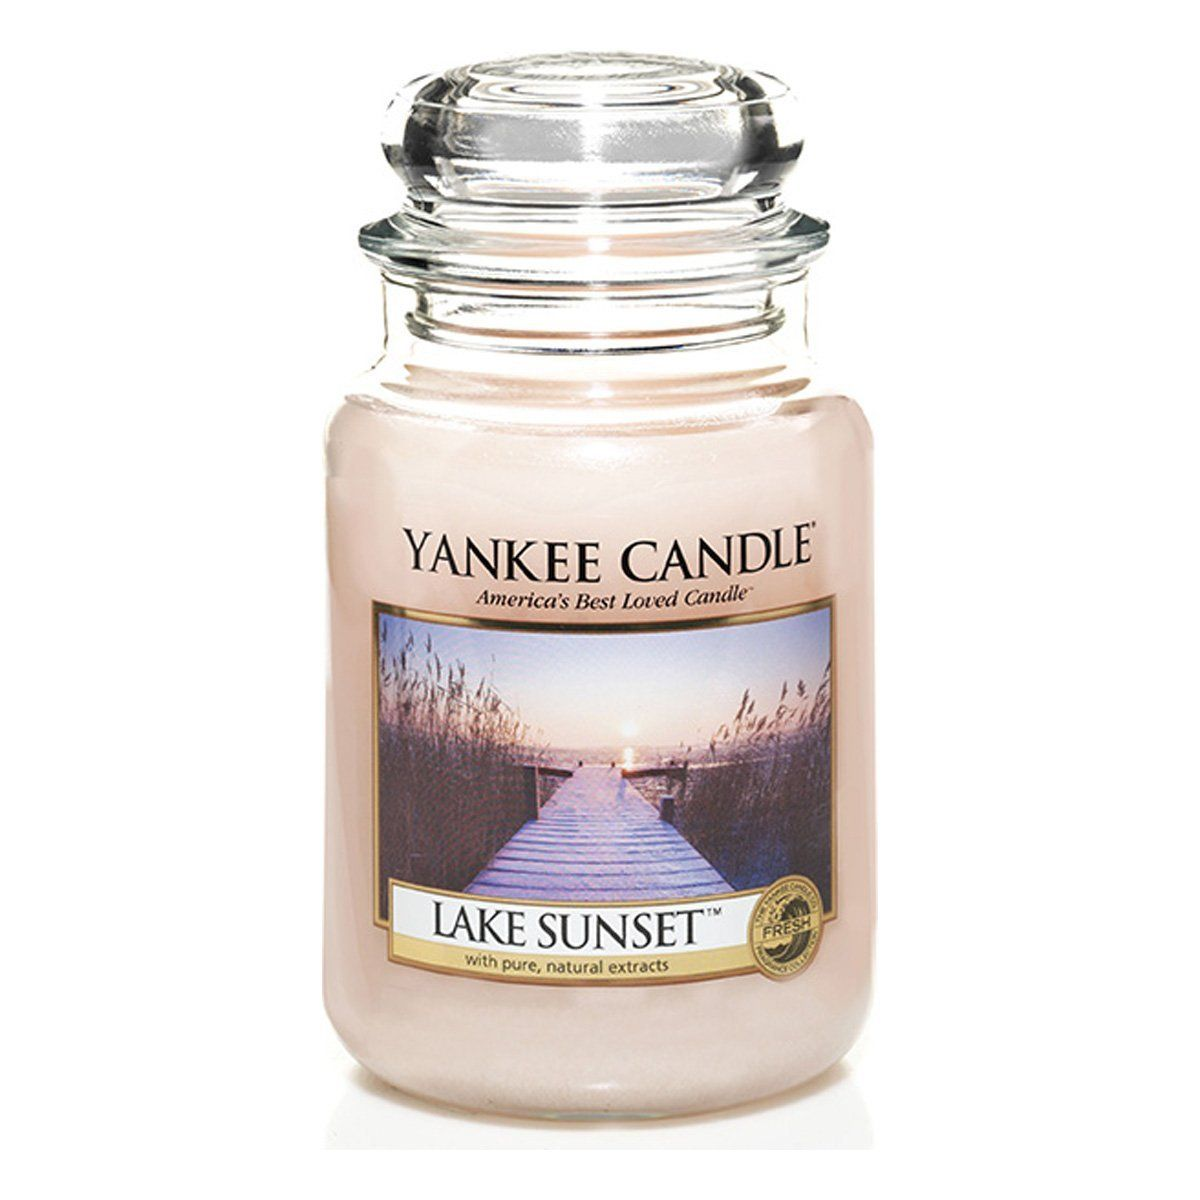 Yankee candles large jar candle lake sunset ueueue startling review